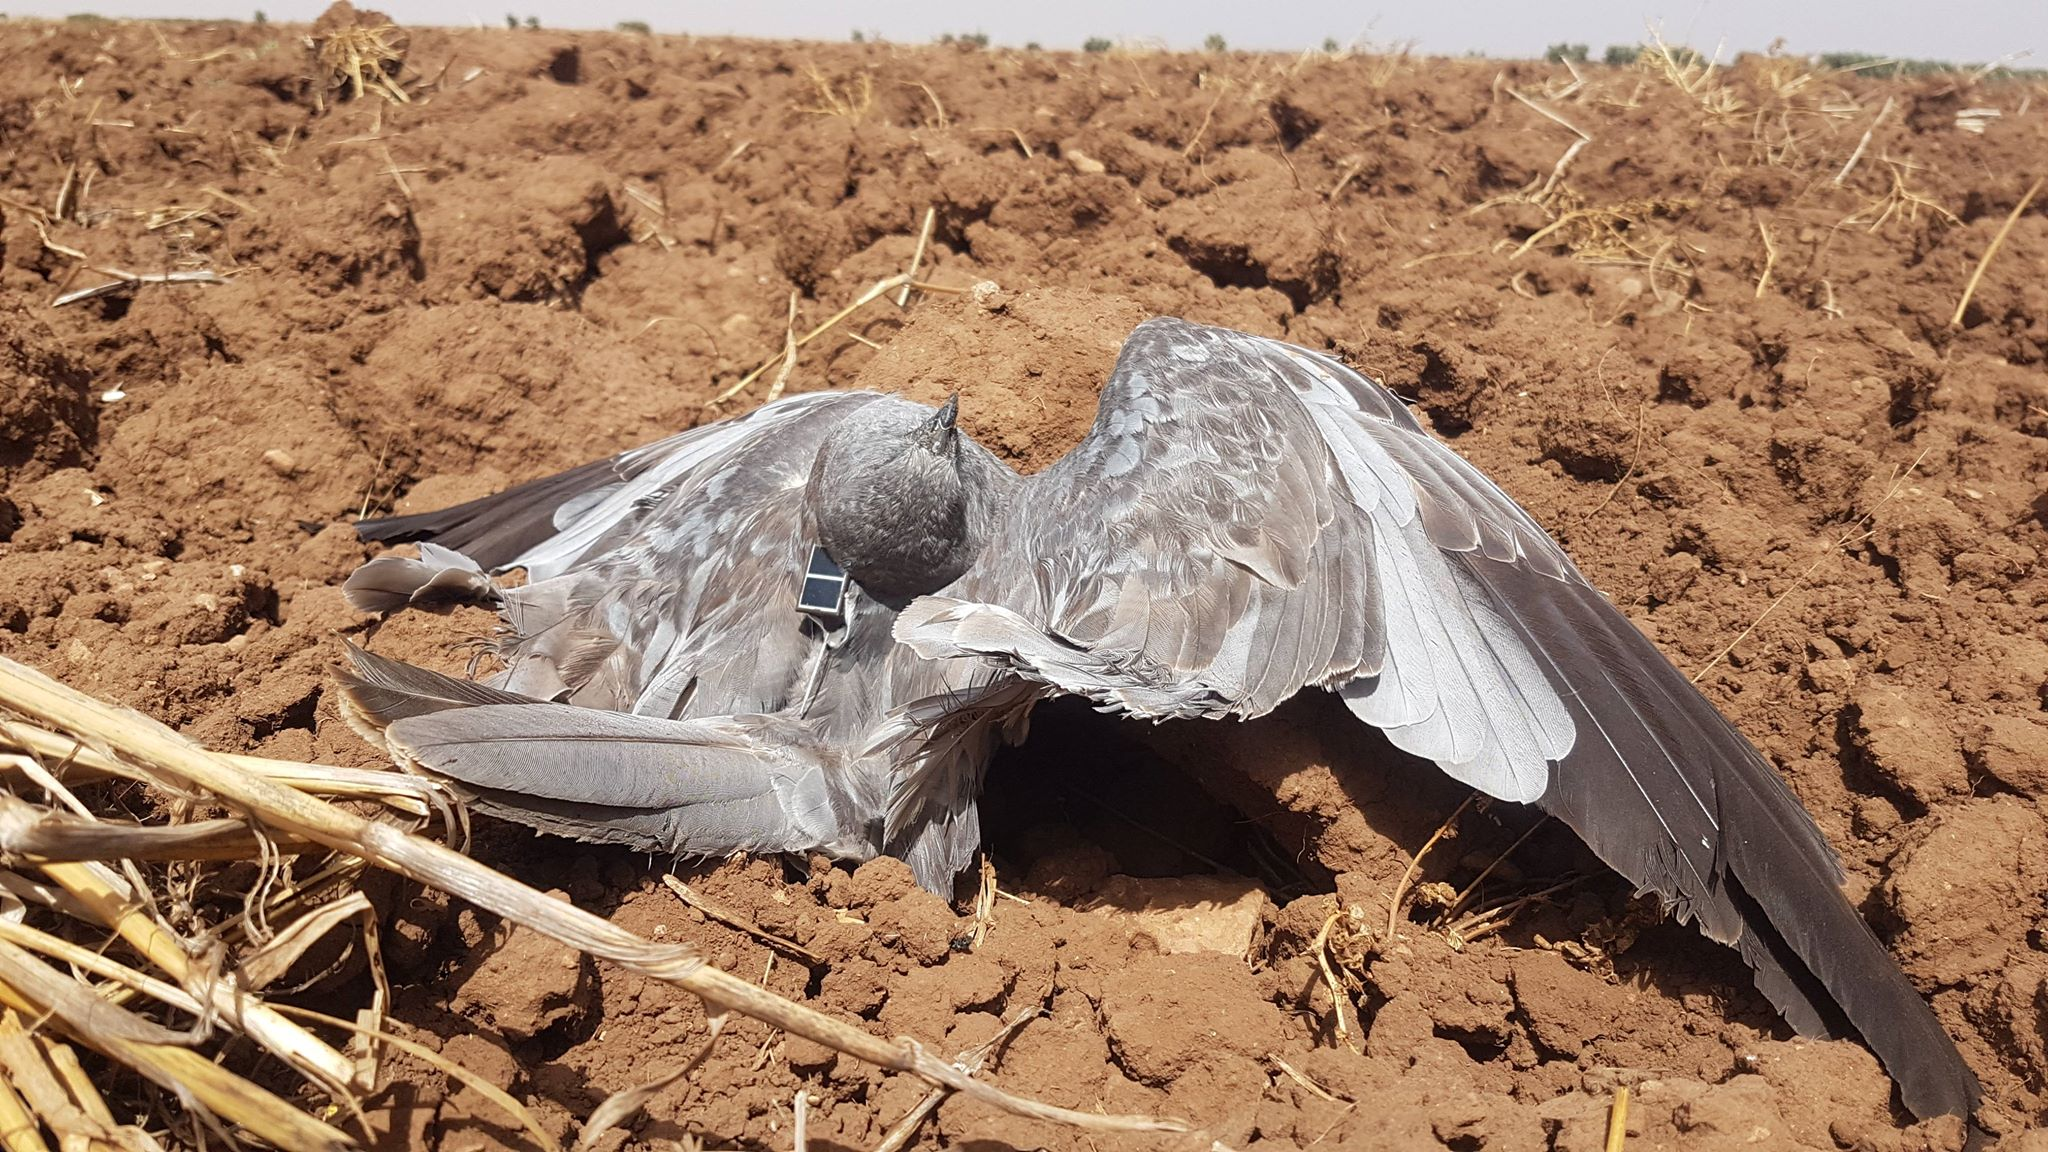 Montagu's Harrier (Circus pygargus) satellite-tracked from France found dead in Morocco, probably shot by poachers, 26 Aug. 2018 (Karim Rousselon).